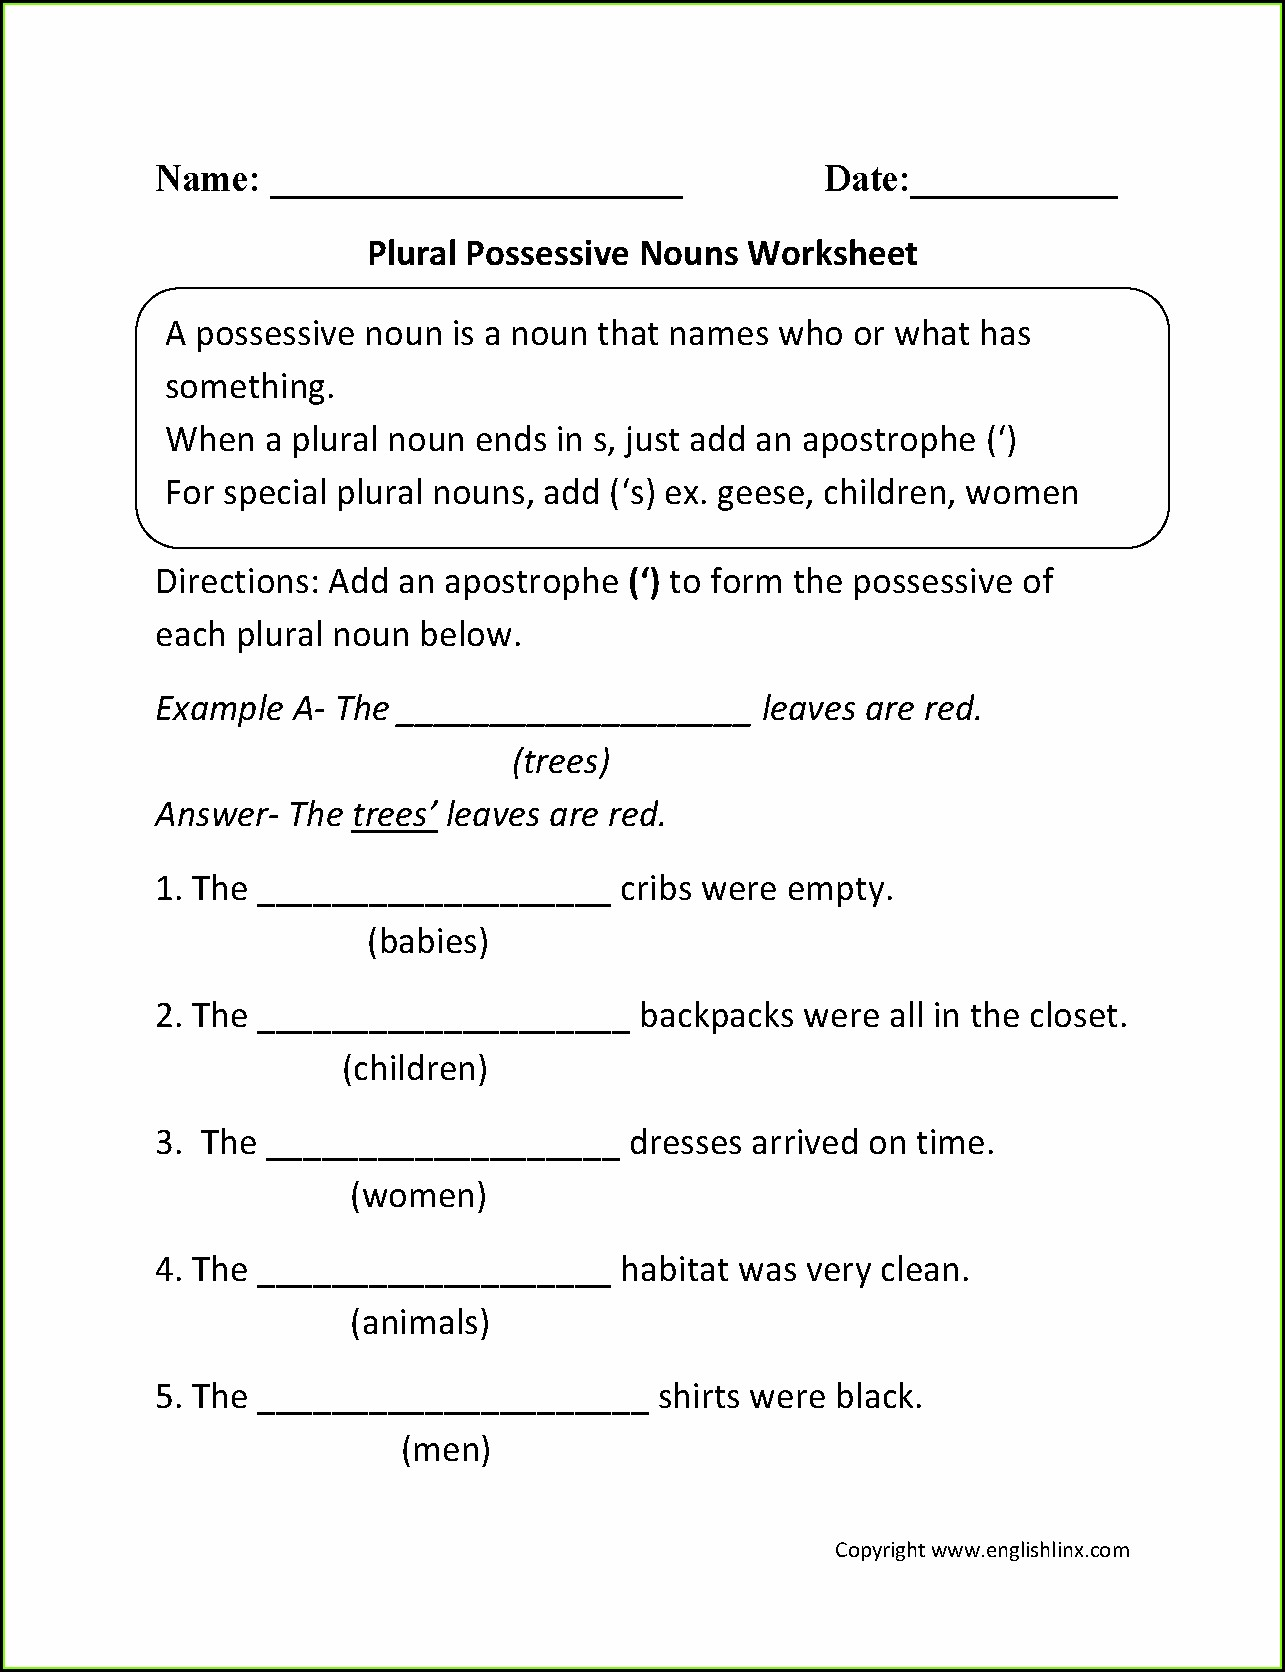 Possessive Pronouns Worksheet For Grade 2 Pdf